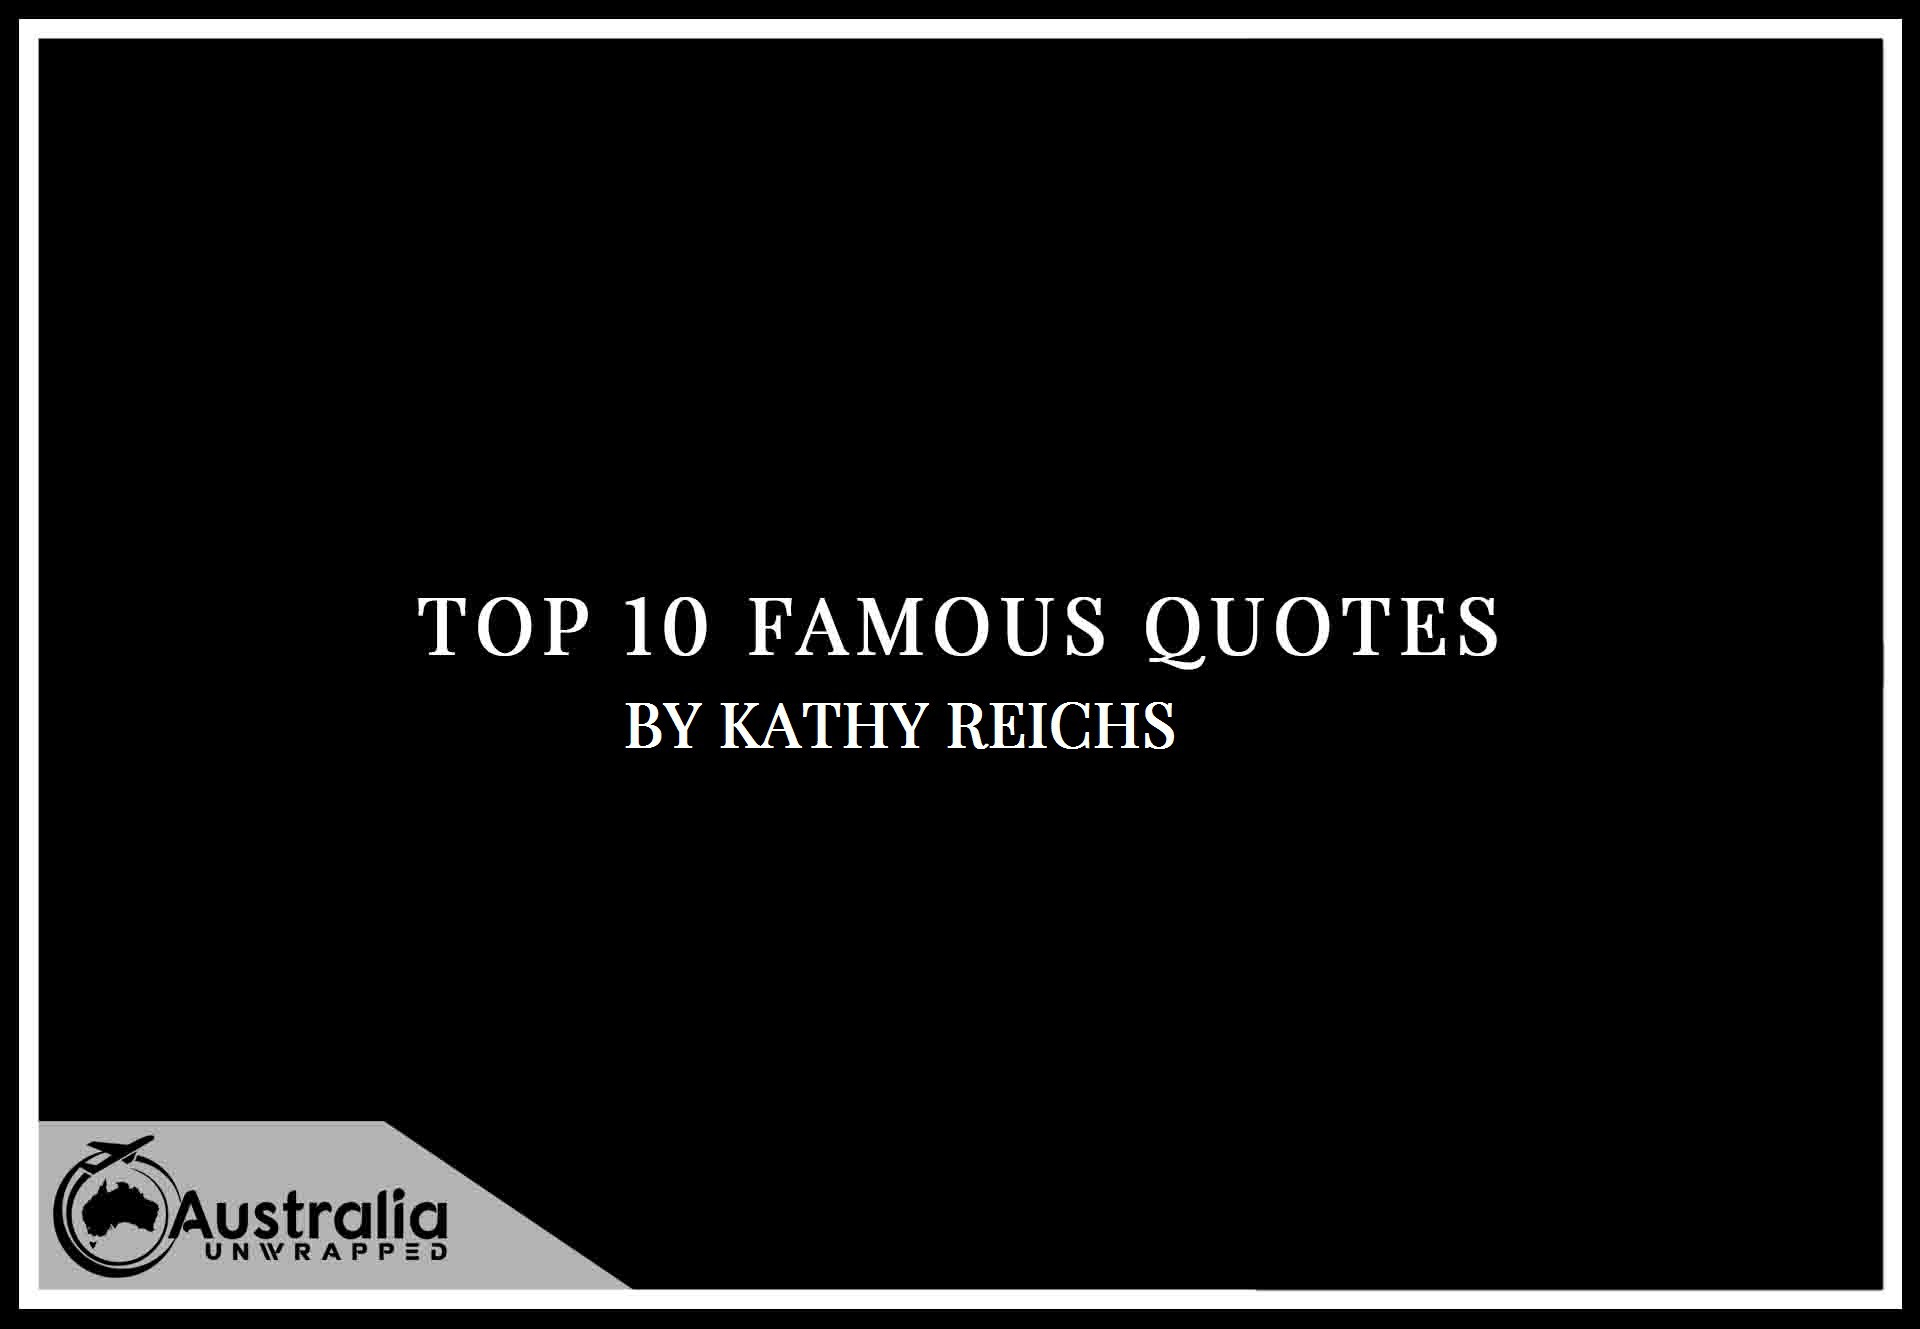 Kathy Reichs's Top 10 Popular and Famous Quotes